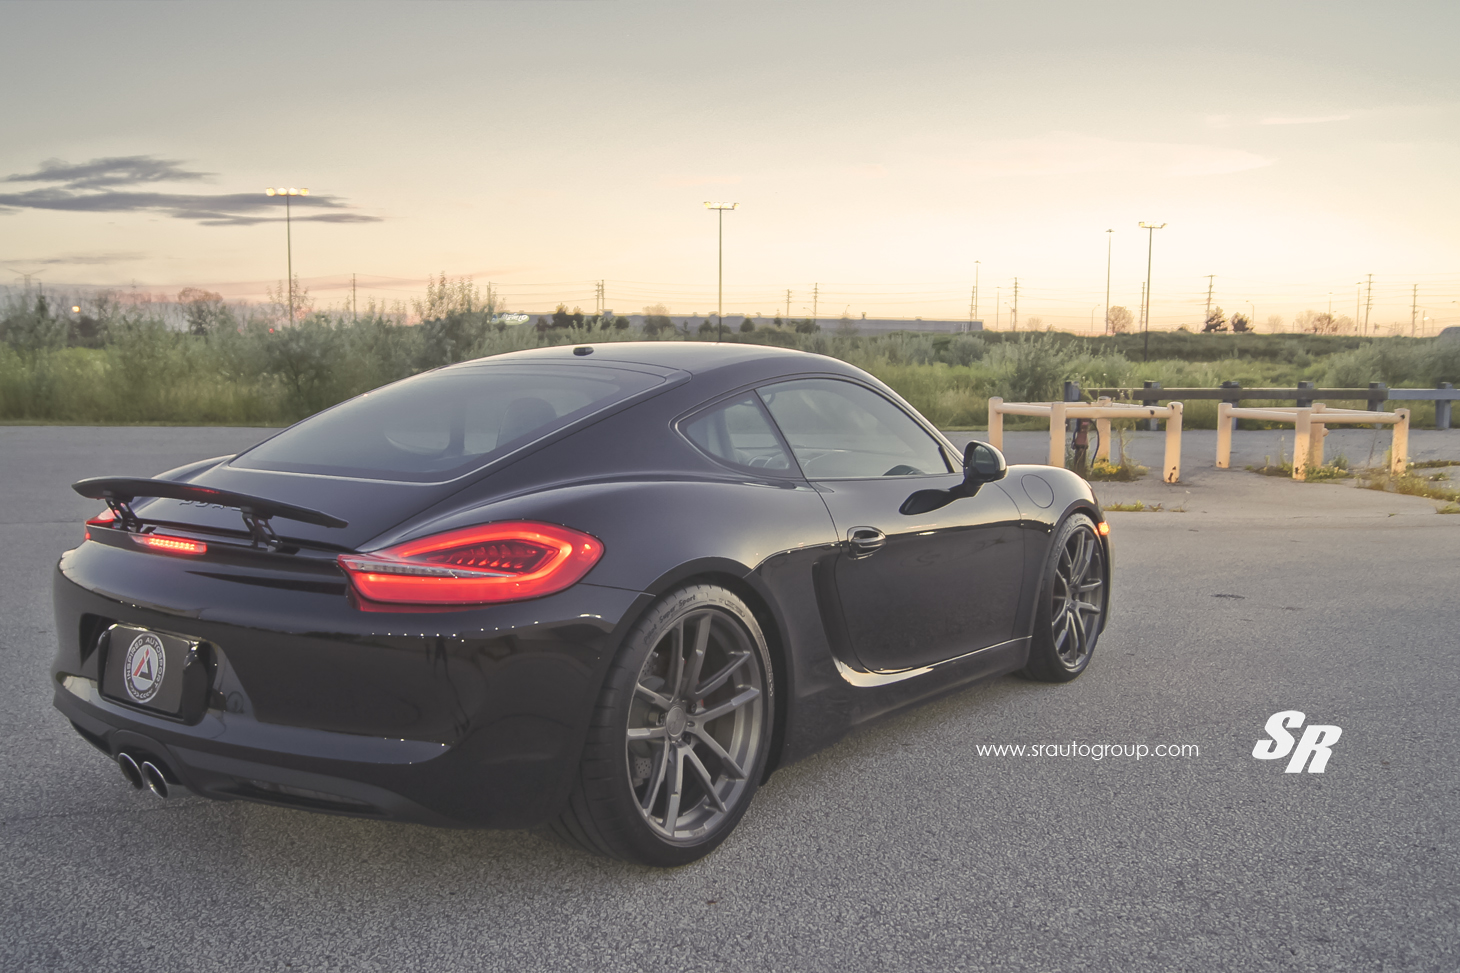 2014 porsche cayman gets 20 inch pur wheels. Black Bedroom Furniture Sets. Home Design Ideas